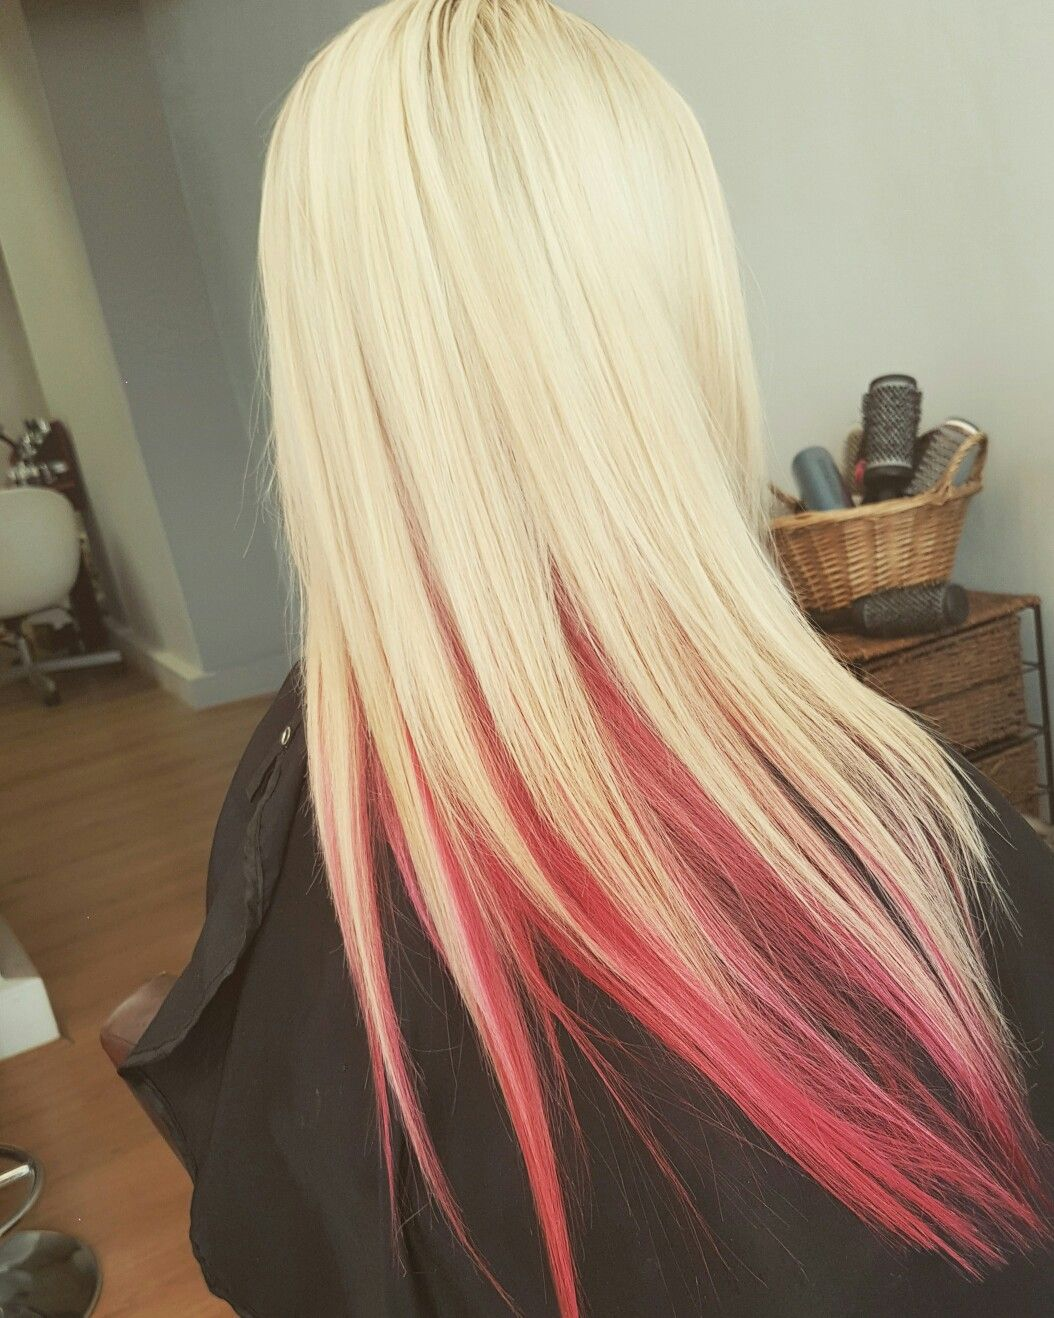 Blond Highlights With Pink Red Underneath Pink Blonde Hair Blonde Highlights Pink Underneath Hair